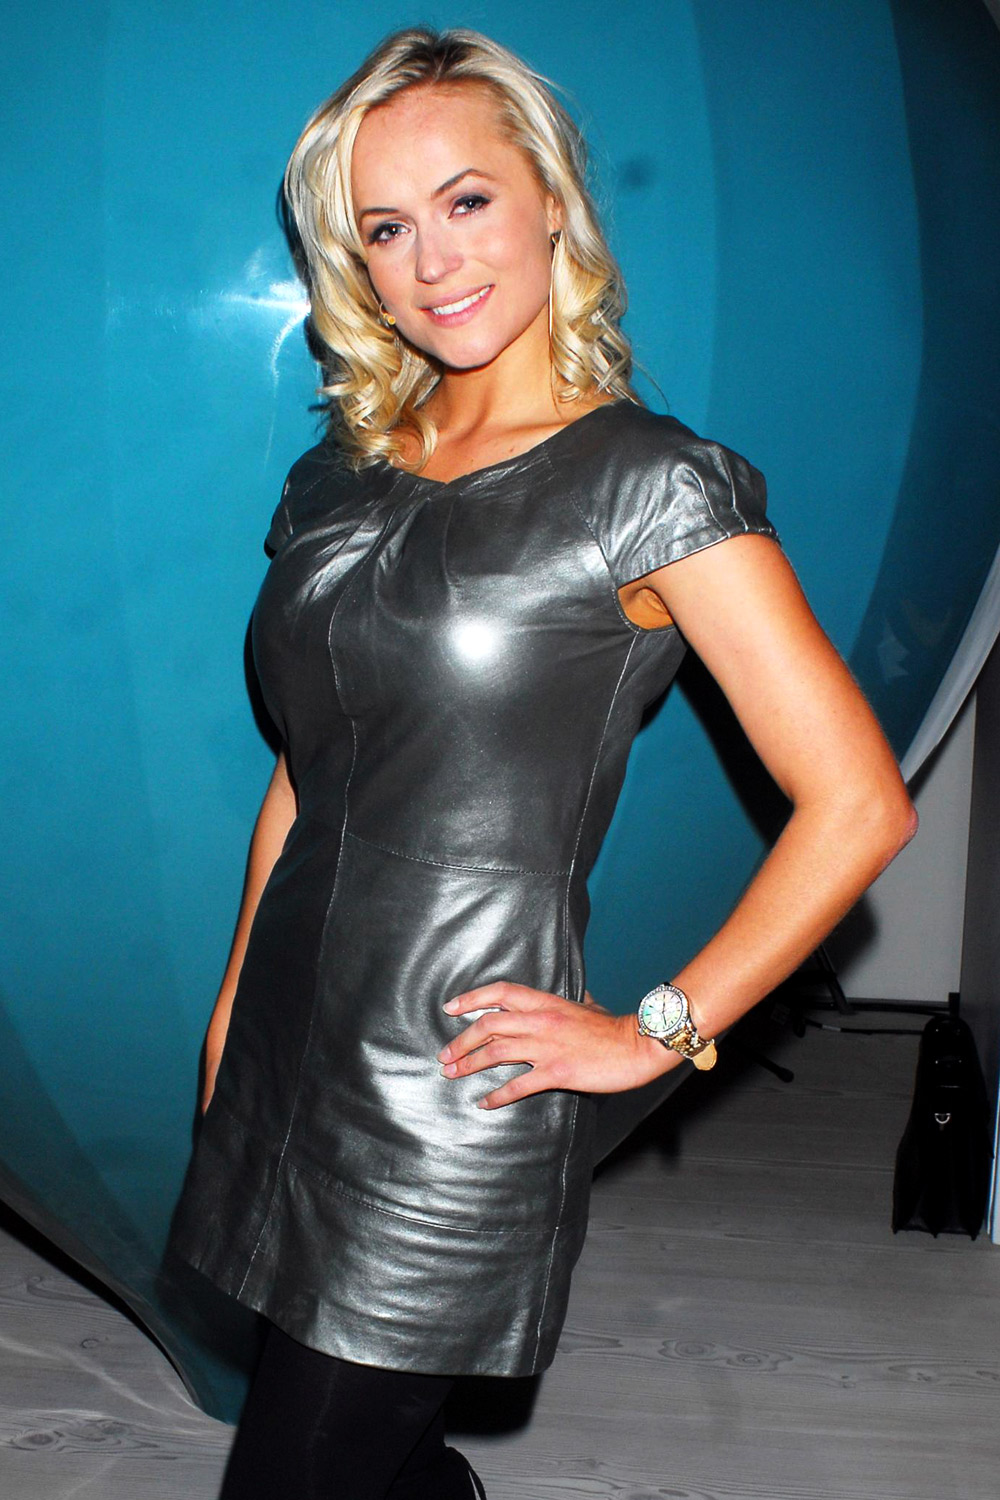 Pollyanna Woodward at Microsoft event